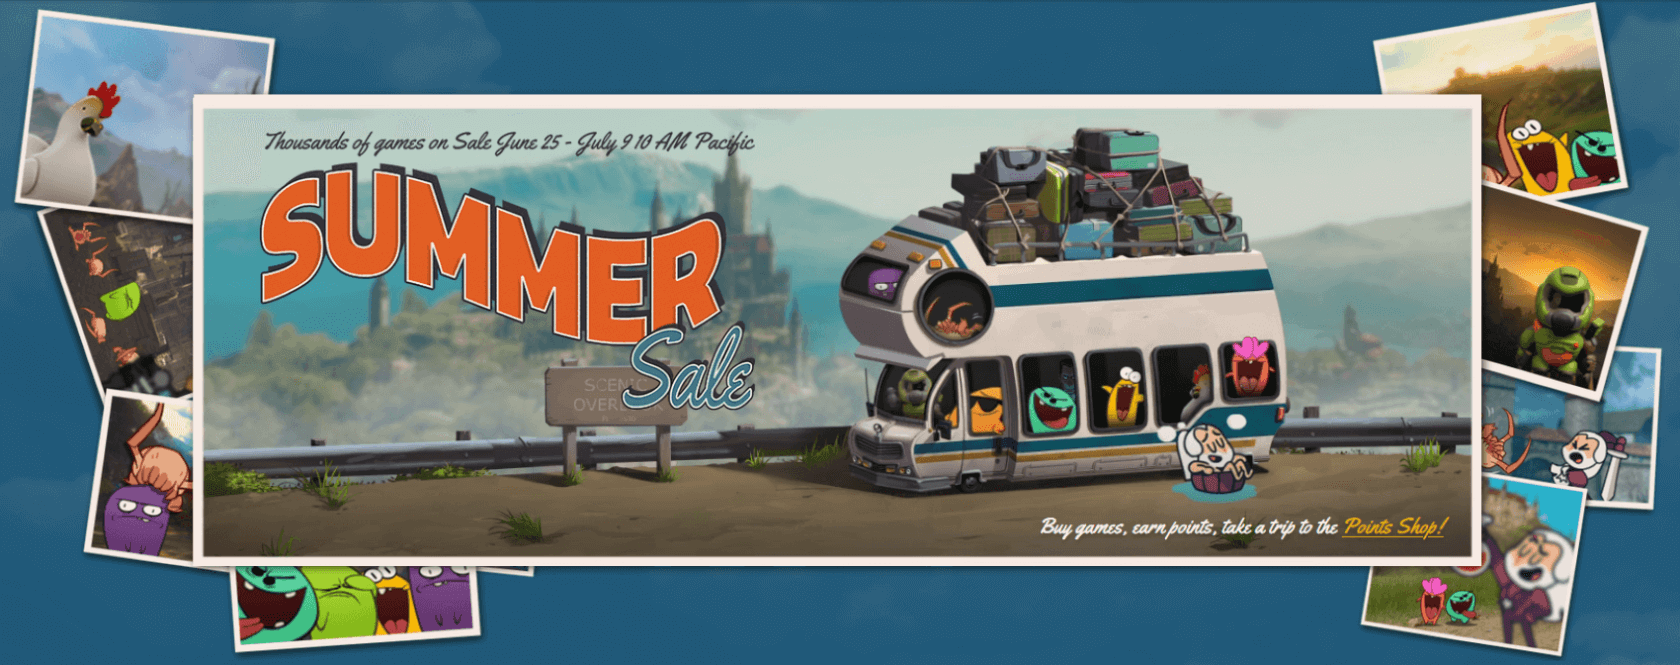 Steam's annual Summer Sale has arrived, offers hefty savings on 'thousands' of games